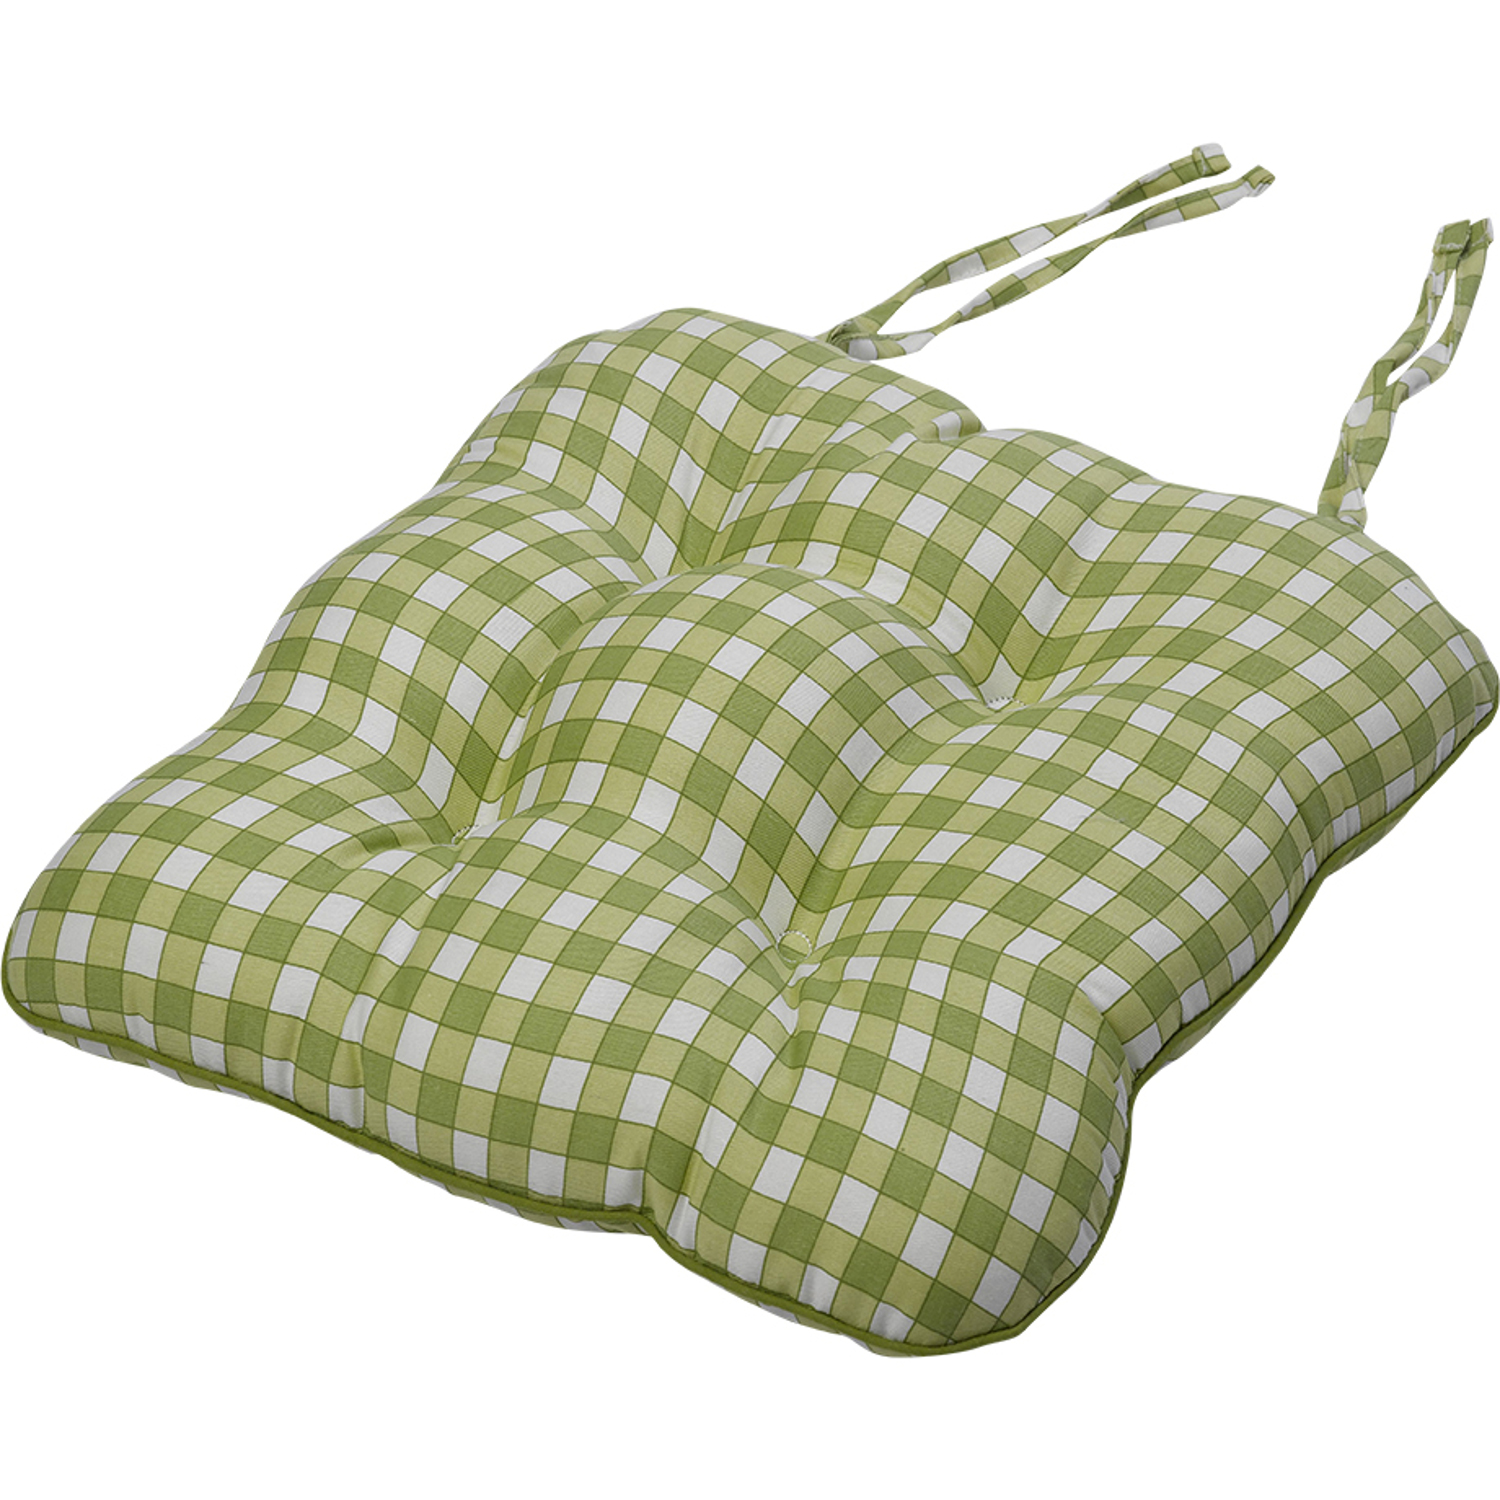 Gingham Chair Tie On Square Gingham Chair Seat Pad Cushion Outdoor